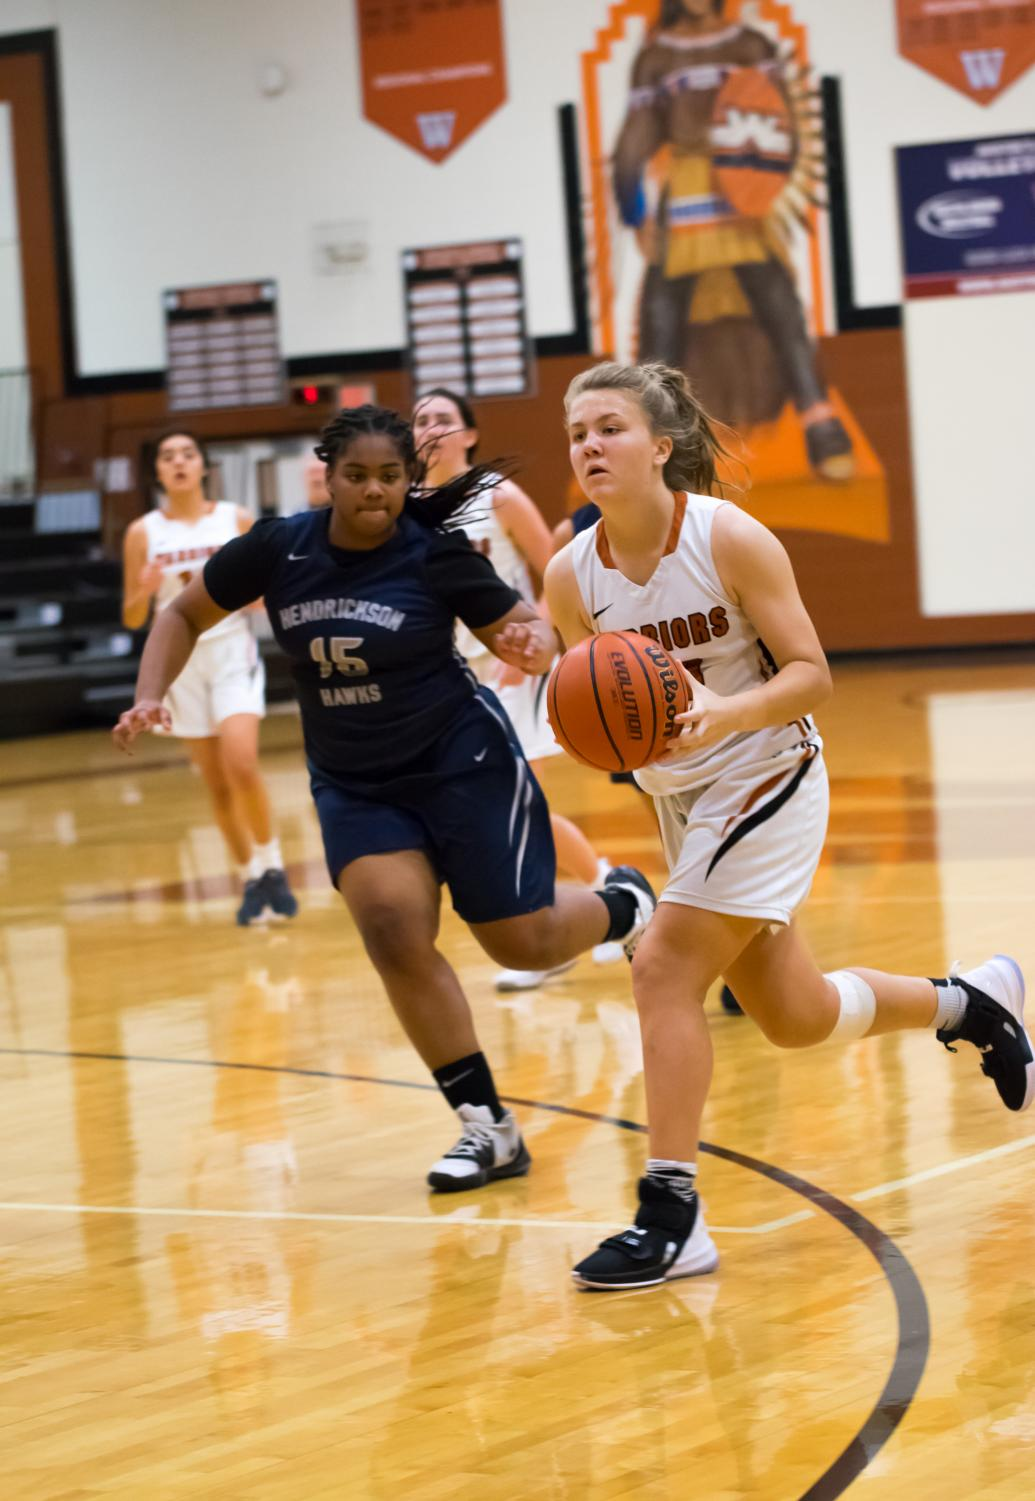 With+a+defensive+player+on+her+right%2C+Atlee+Olofson+%2723+dribbles+the+ball.+Olofson+attempted+to+make+a+2-pointer%2C+but+missed.